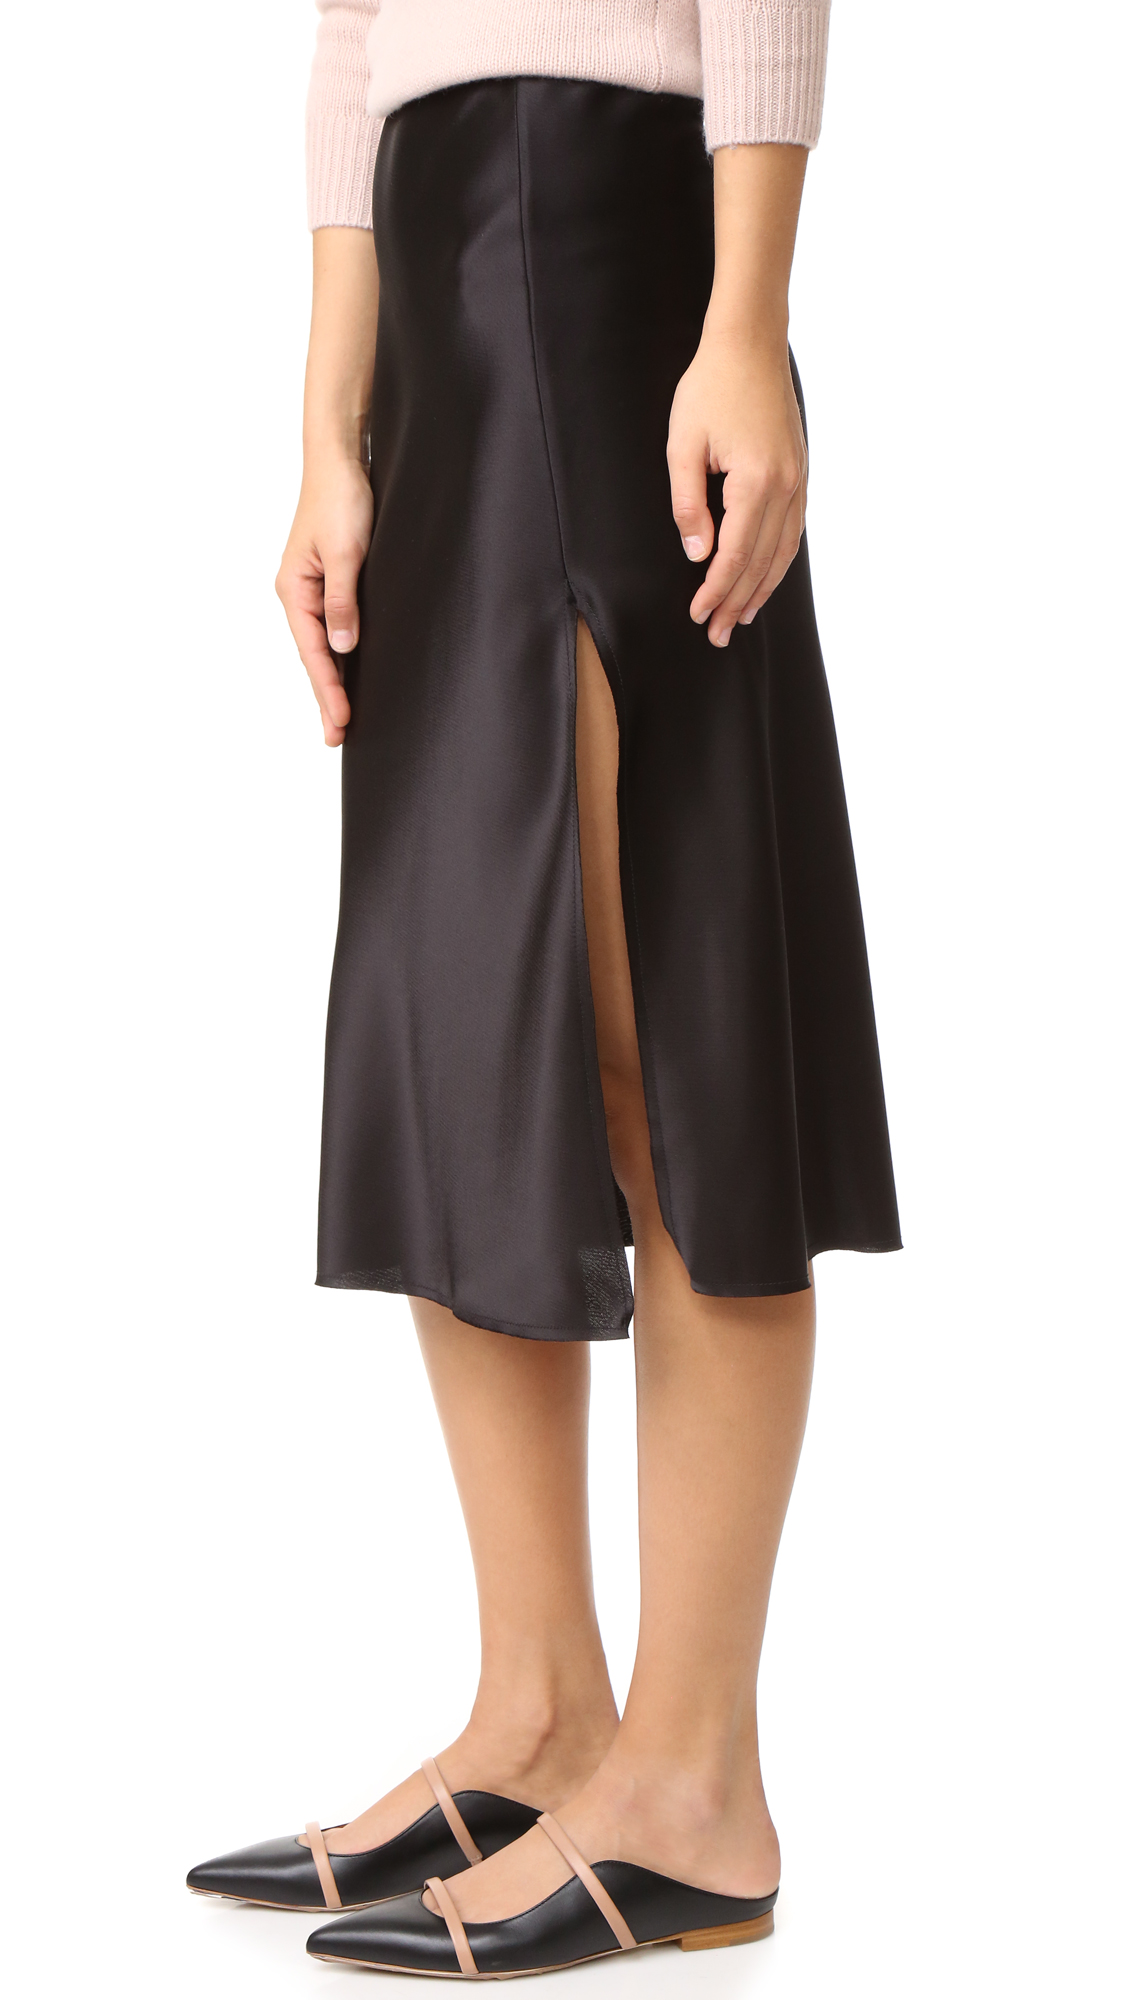 Emerson Thorpe Tori Mid Length Skirt - Black